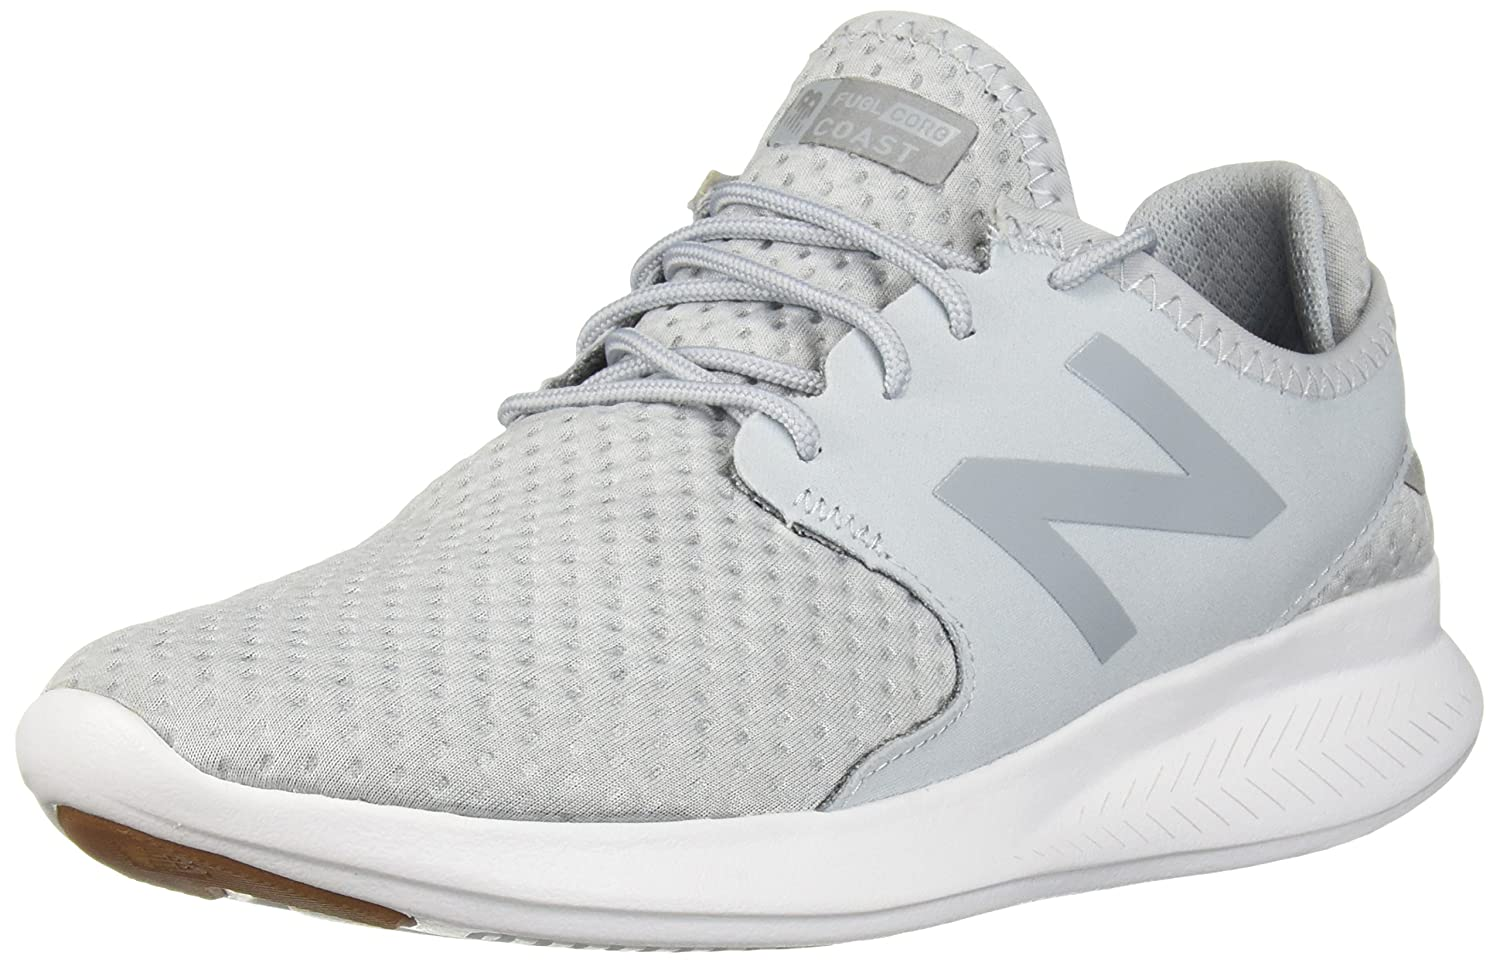 New Balance Women's Coast-V3 Running Shoe B01N6KJUN1 6 B(M) US|Light Cyclone/Silver